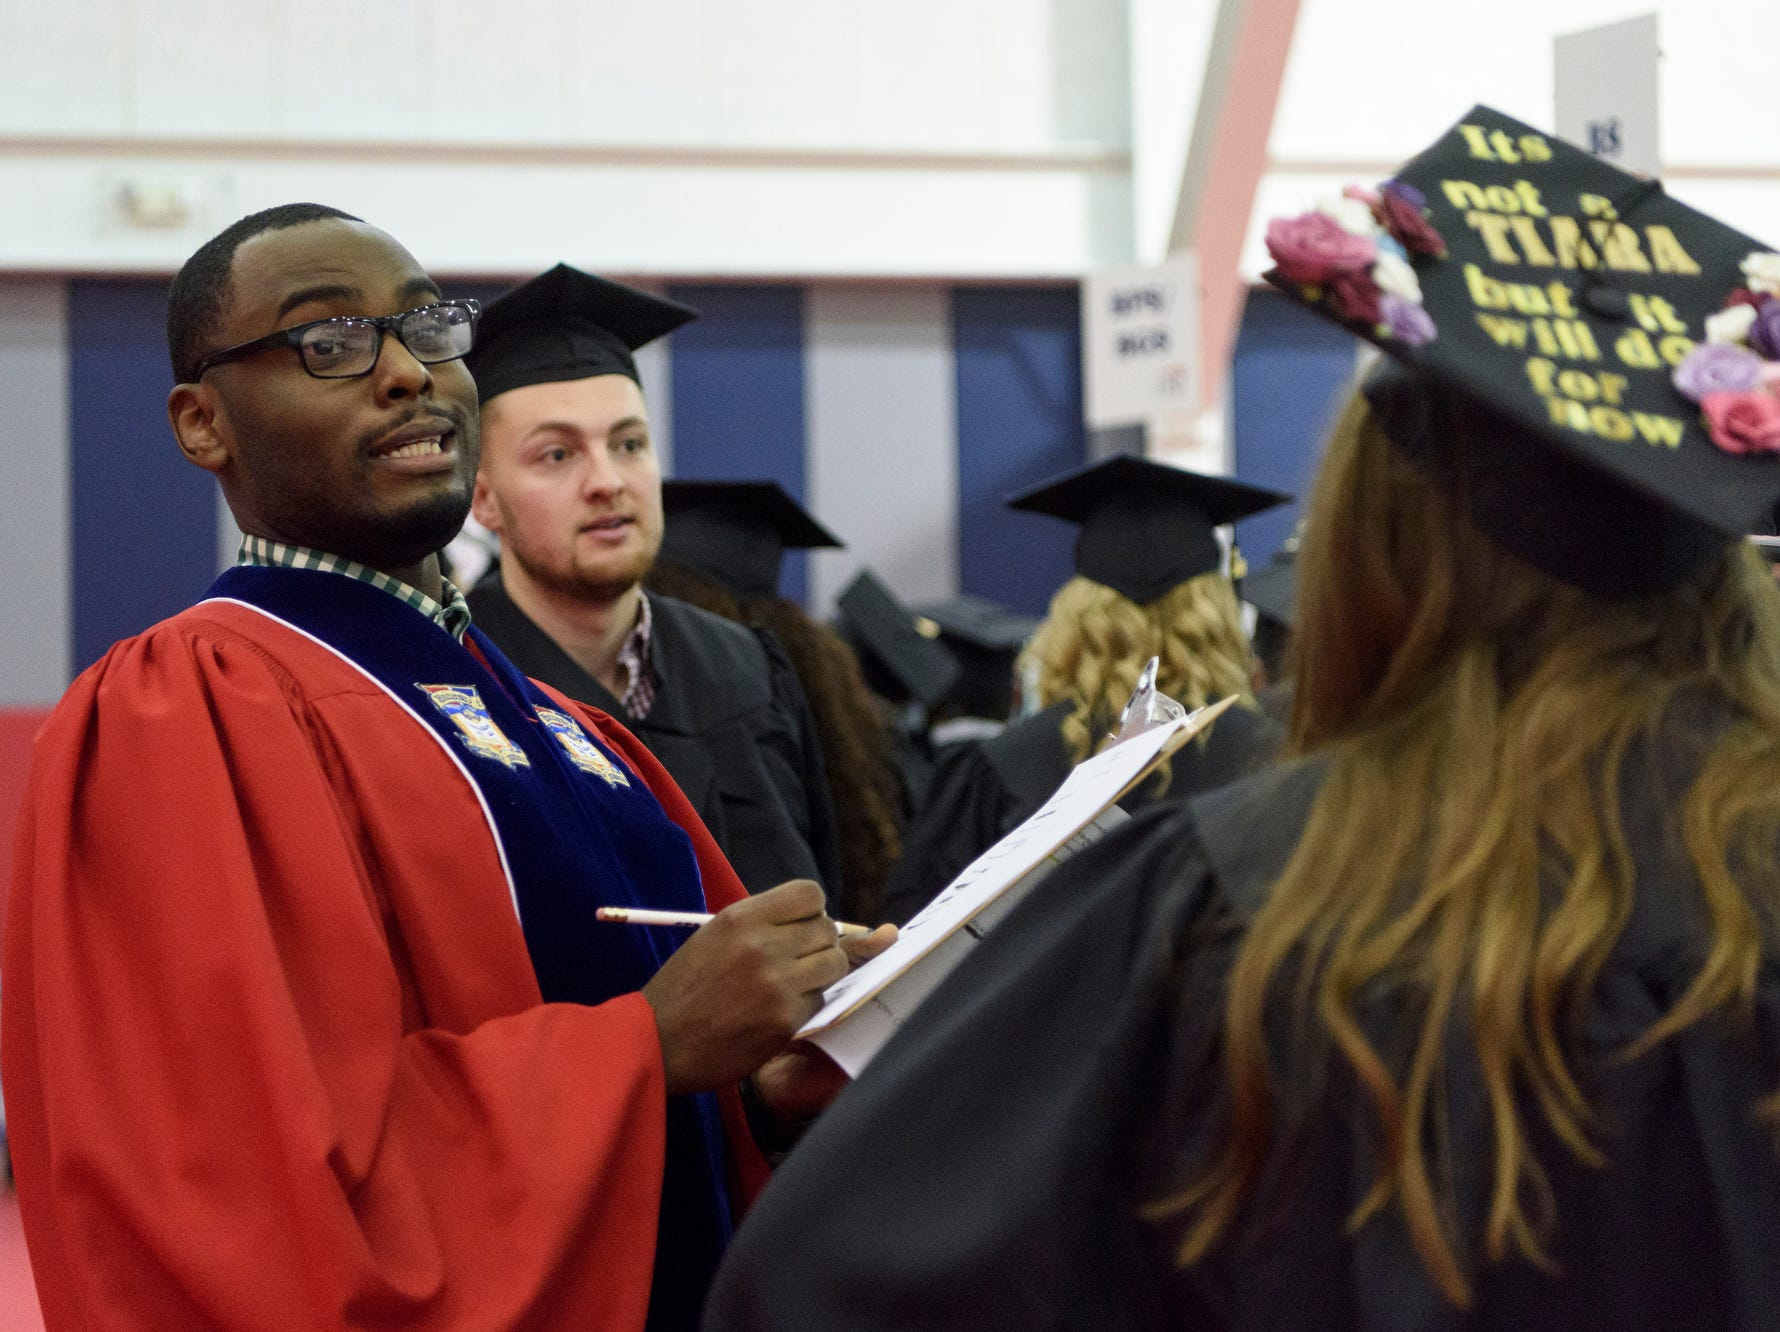 D'Angelo Taylor, Assistant Director of the Multicultural Center at the University of Southern Indiana, performs a name check with graduates in line for USI's fall commencement ceremony for the College of Liberal Arts and the Romain College of Business held on campus in Evansville, Ind., Saturday, Dec. 8, 2018.